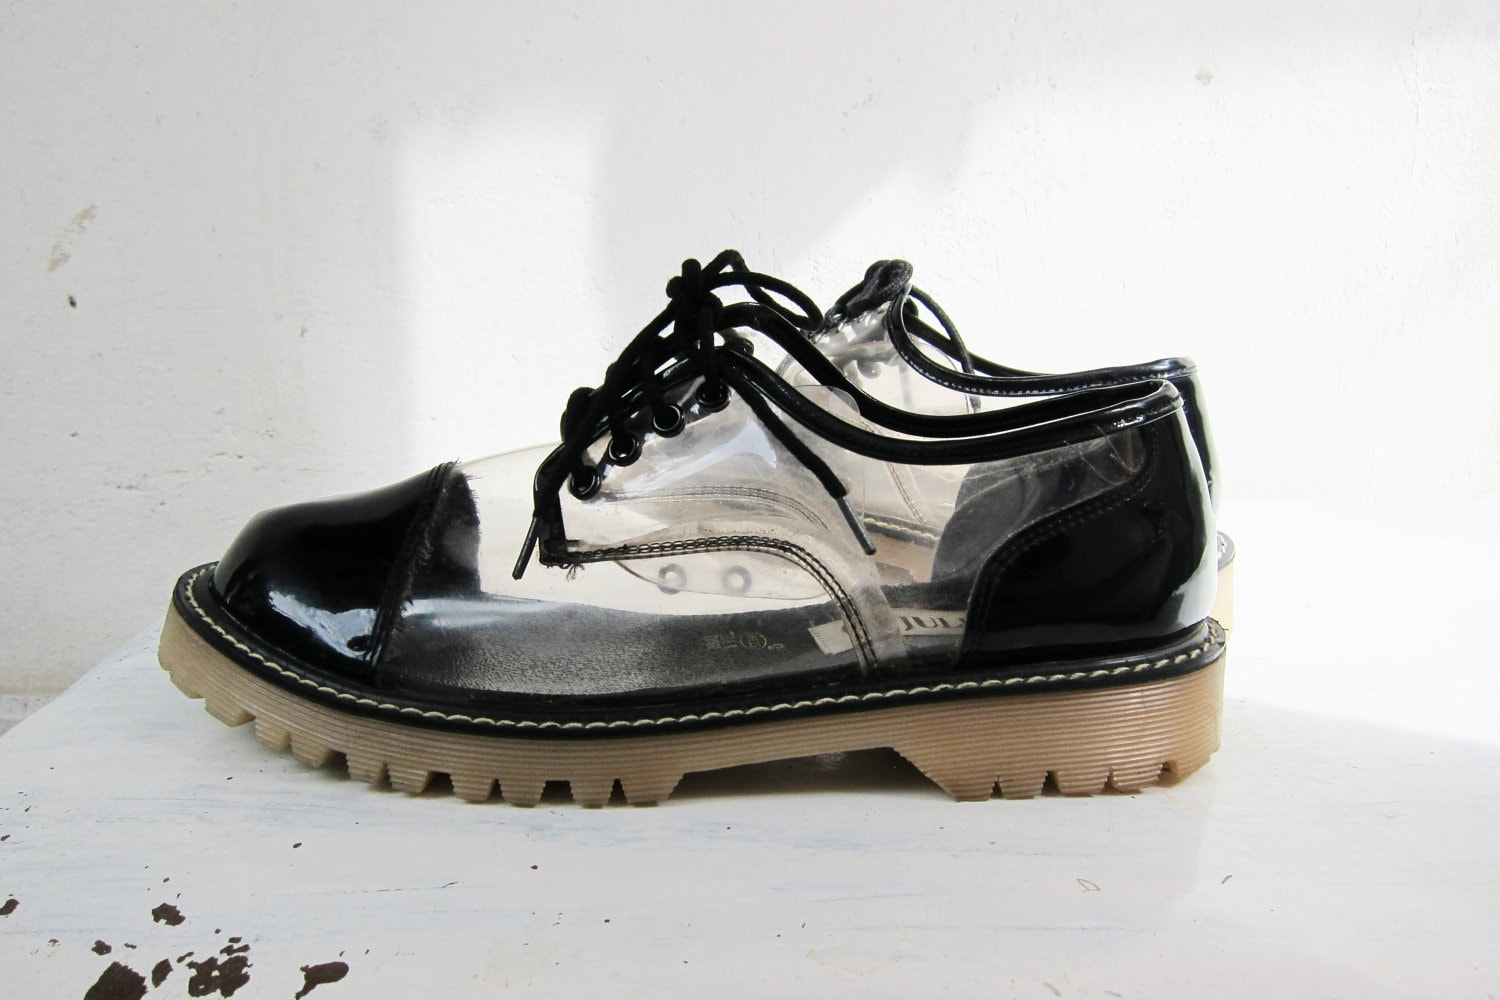 Julianos Vintage Clear Dr Martens Shoes